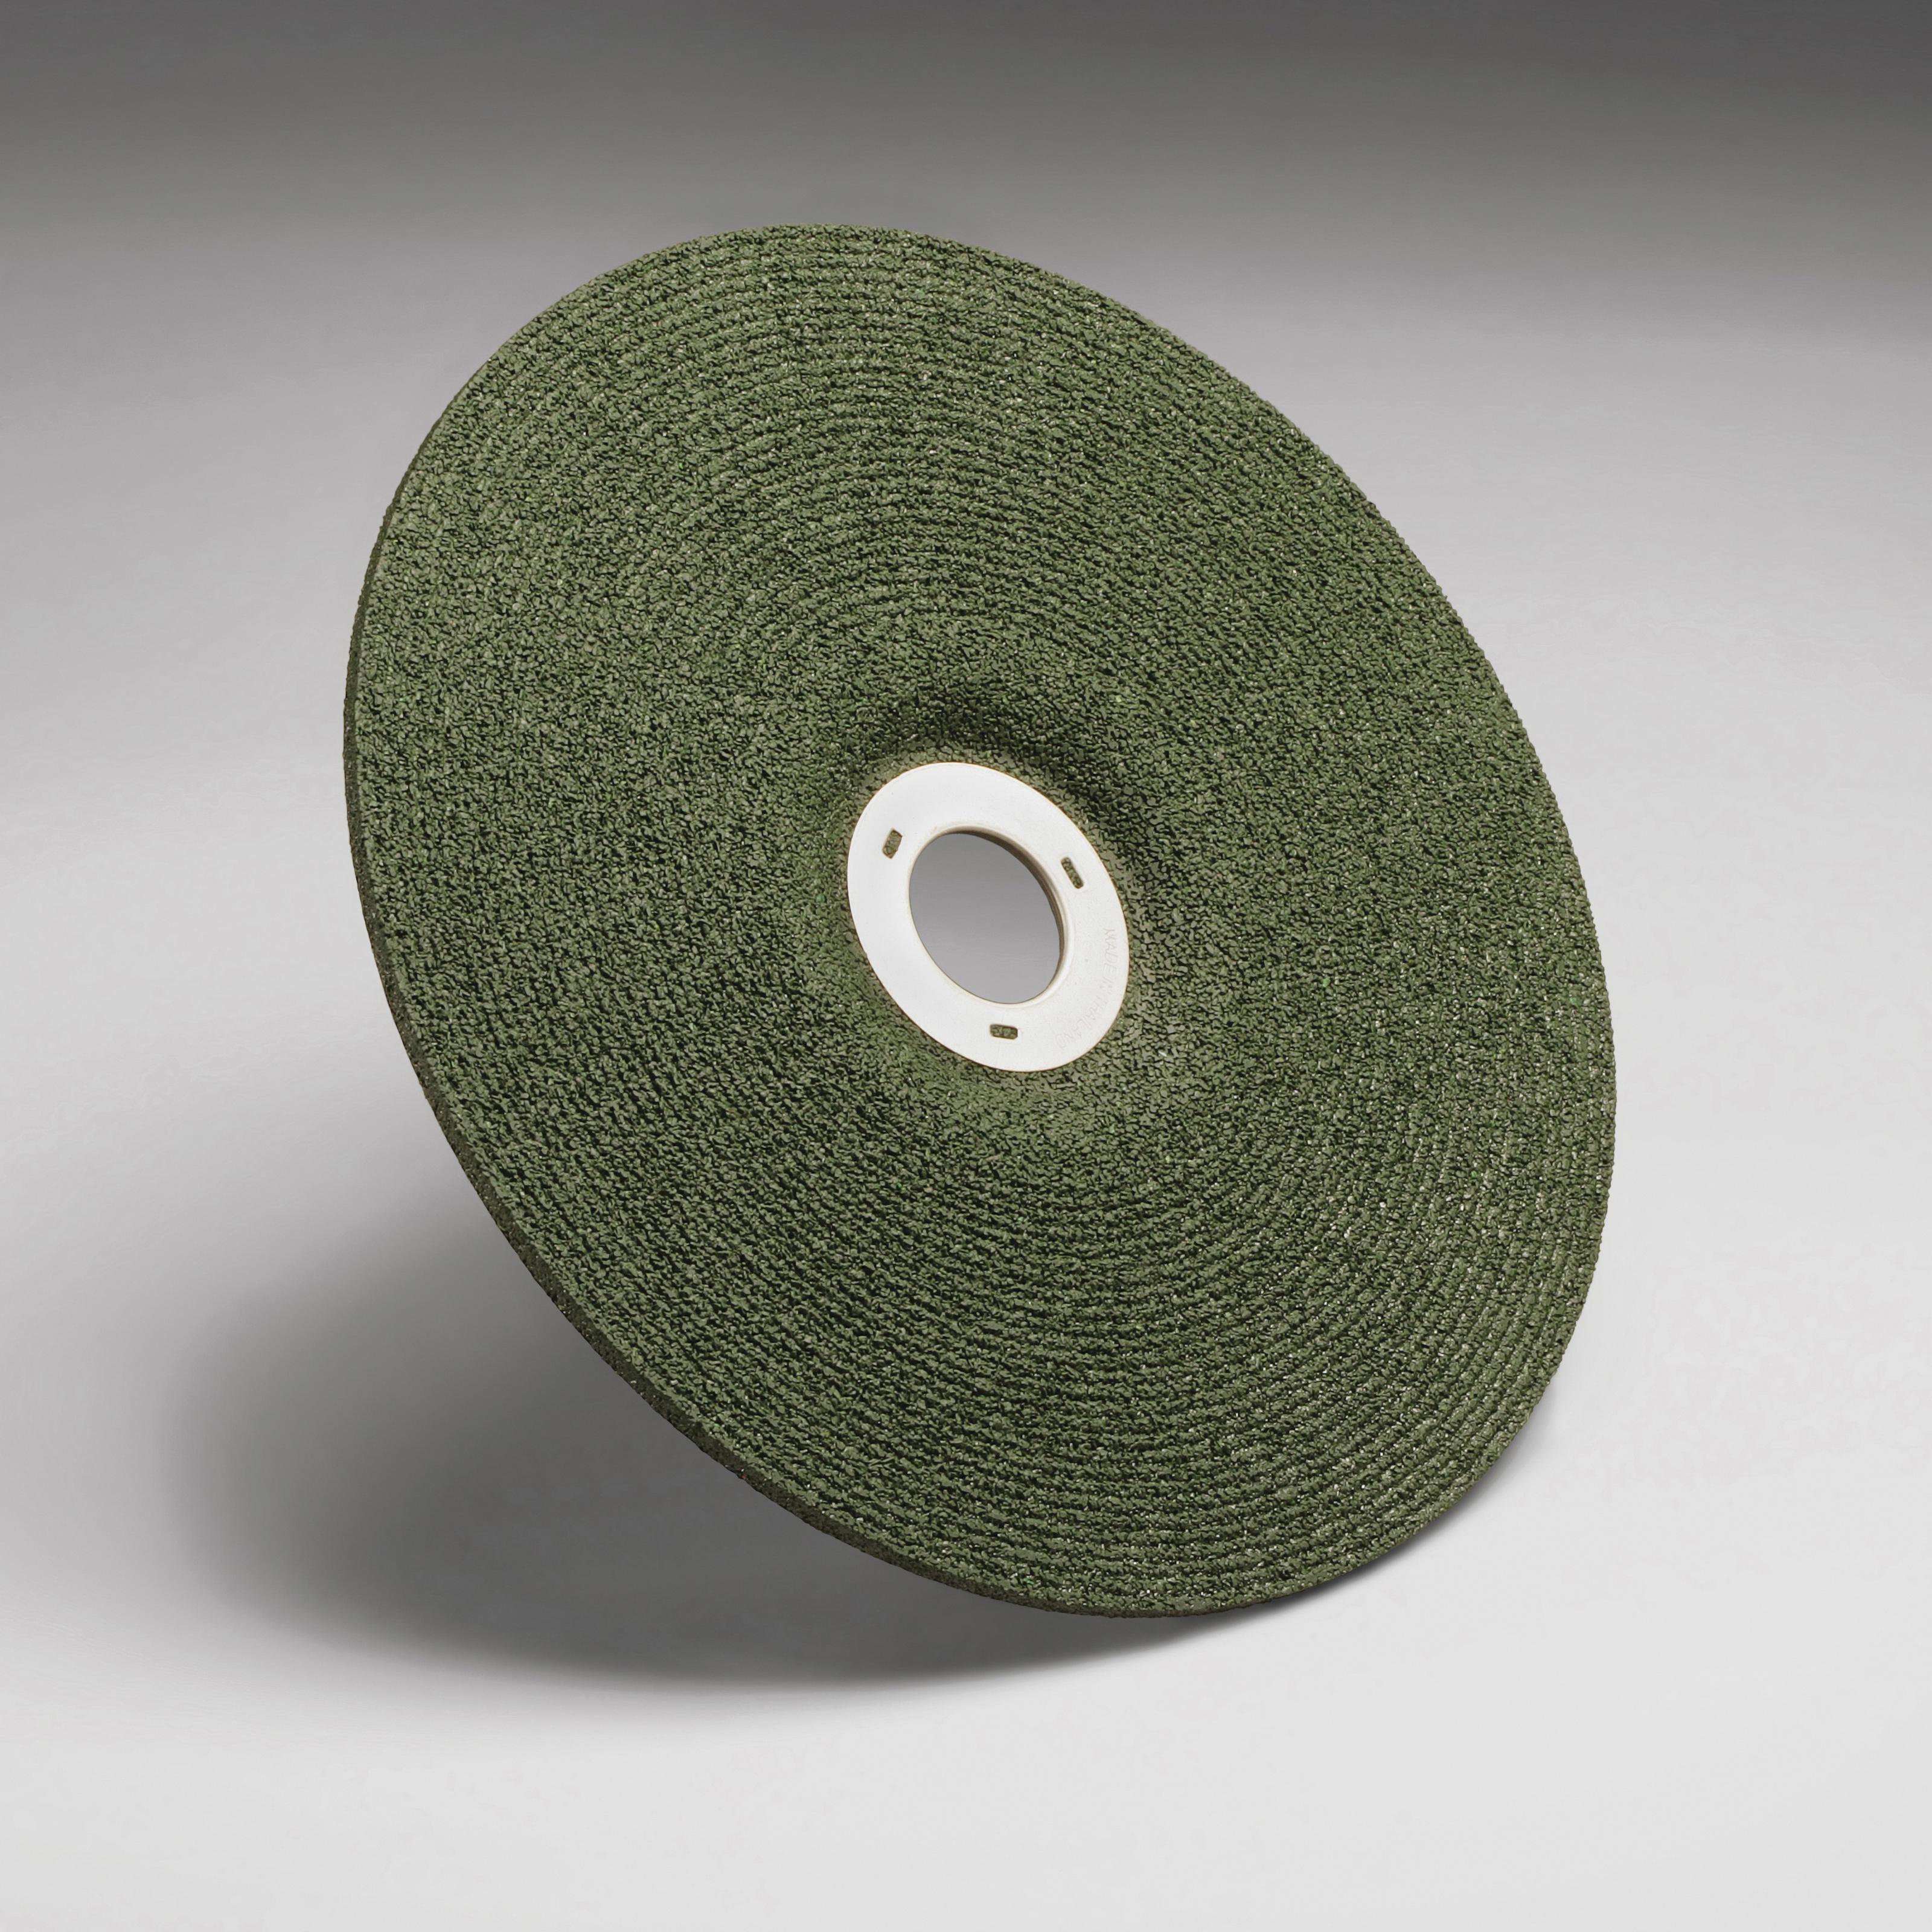 3M™ Green Corps™ 051135-92319 Type 27 Cut-Off Wheel, 7 in Dia x 1/8 in THK, 36 Grit, Ceramic Abrasive